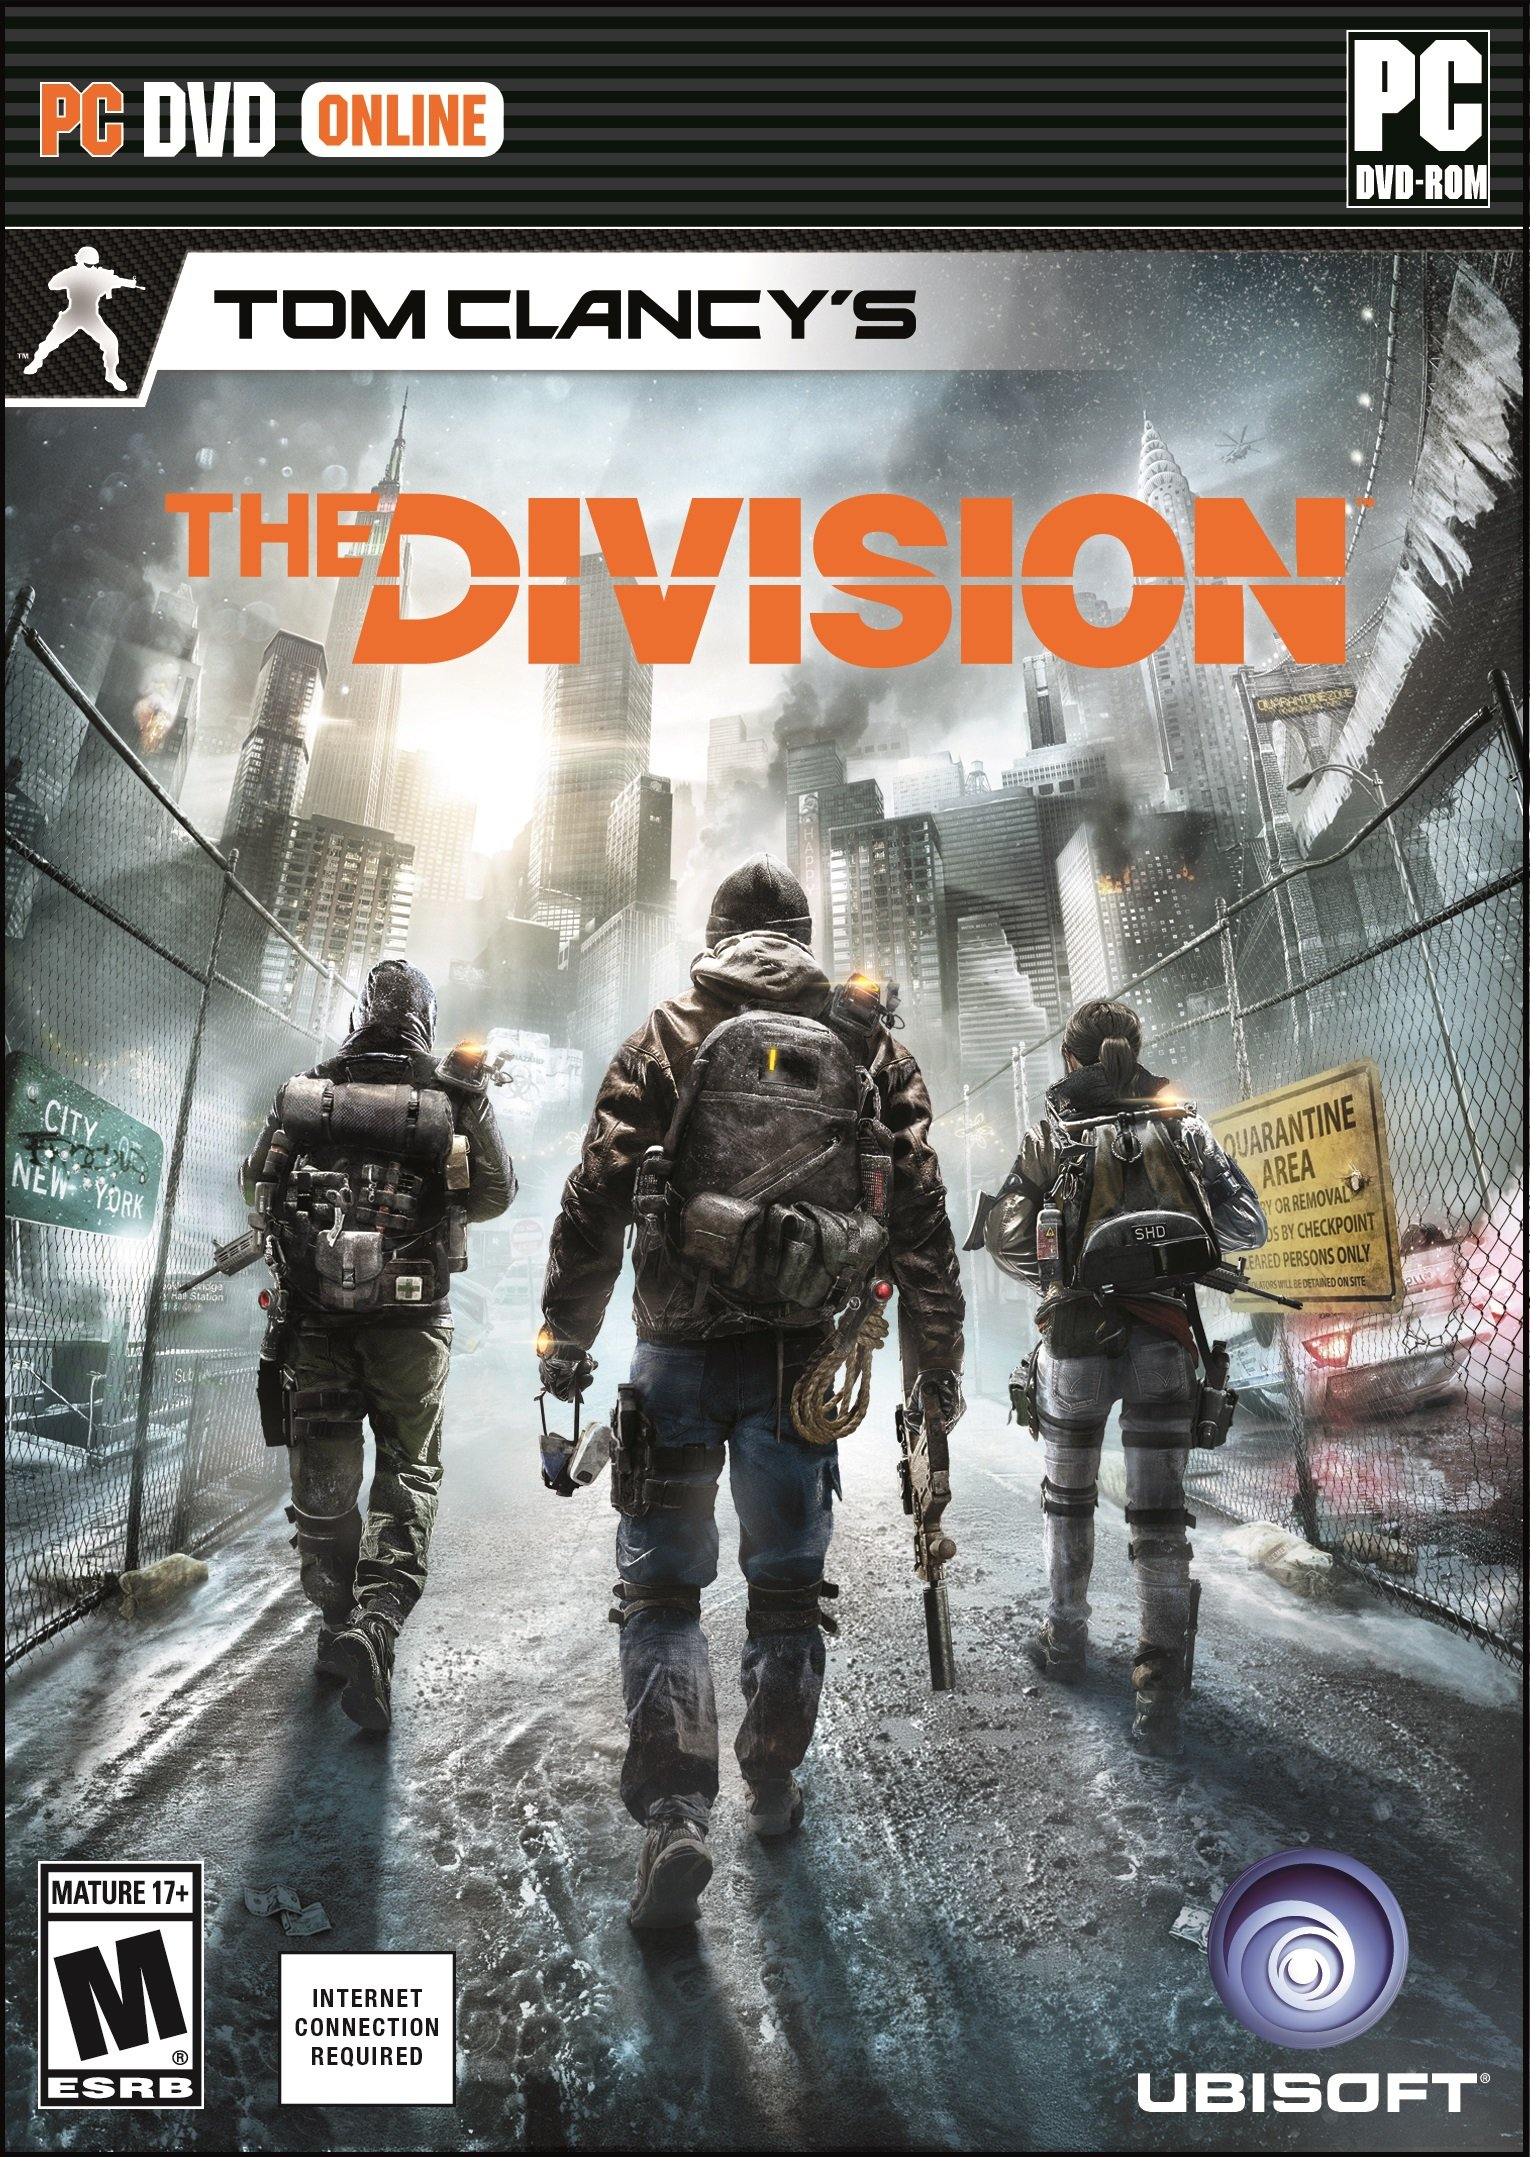 Tom Clancy's The Division - PC by Ubisoft